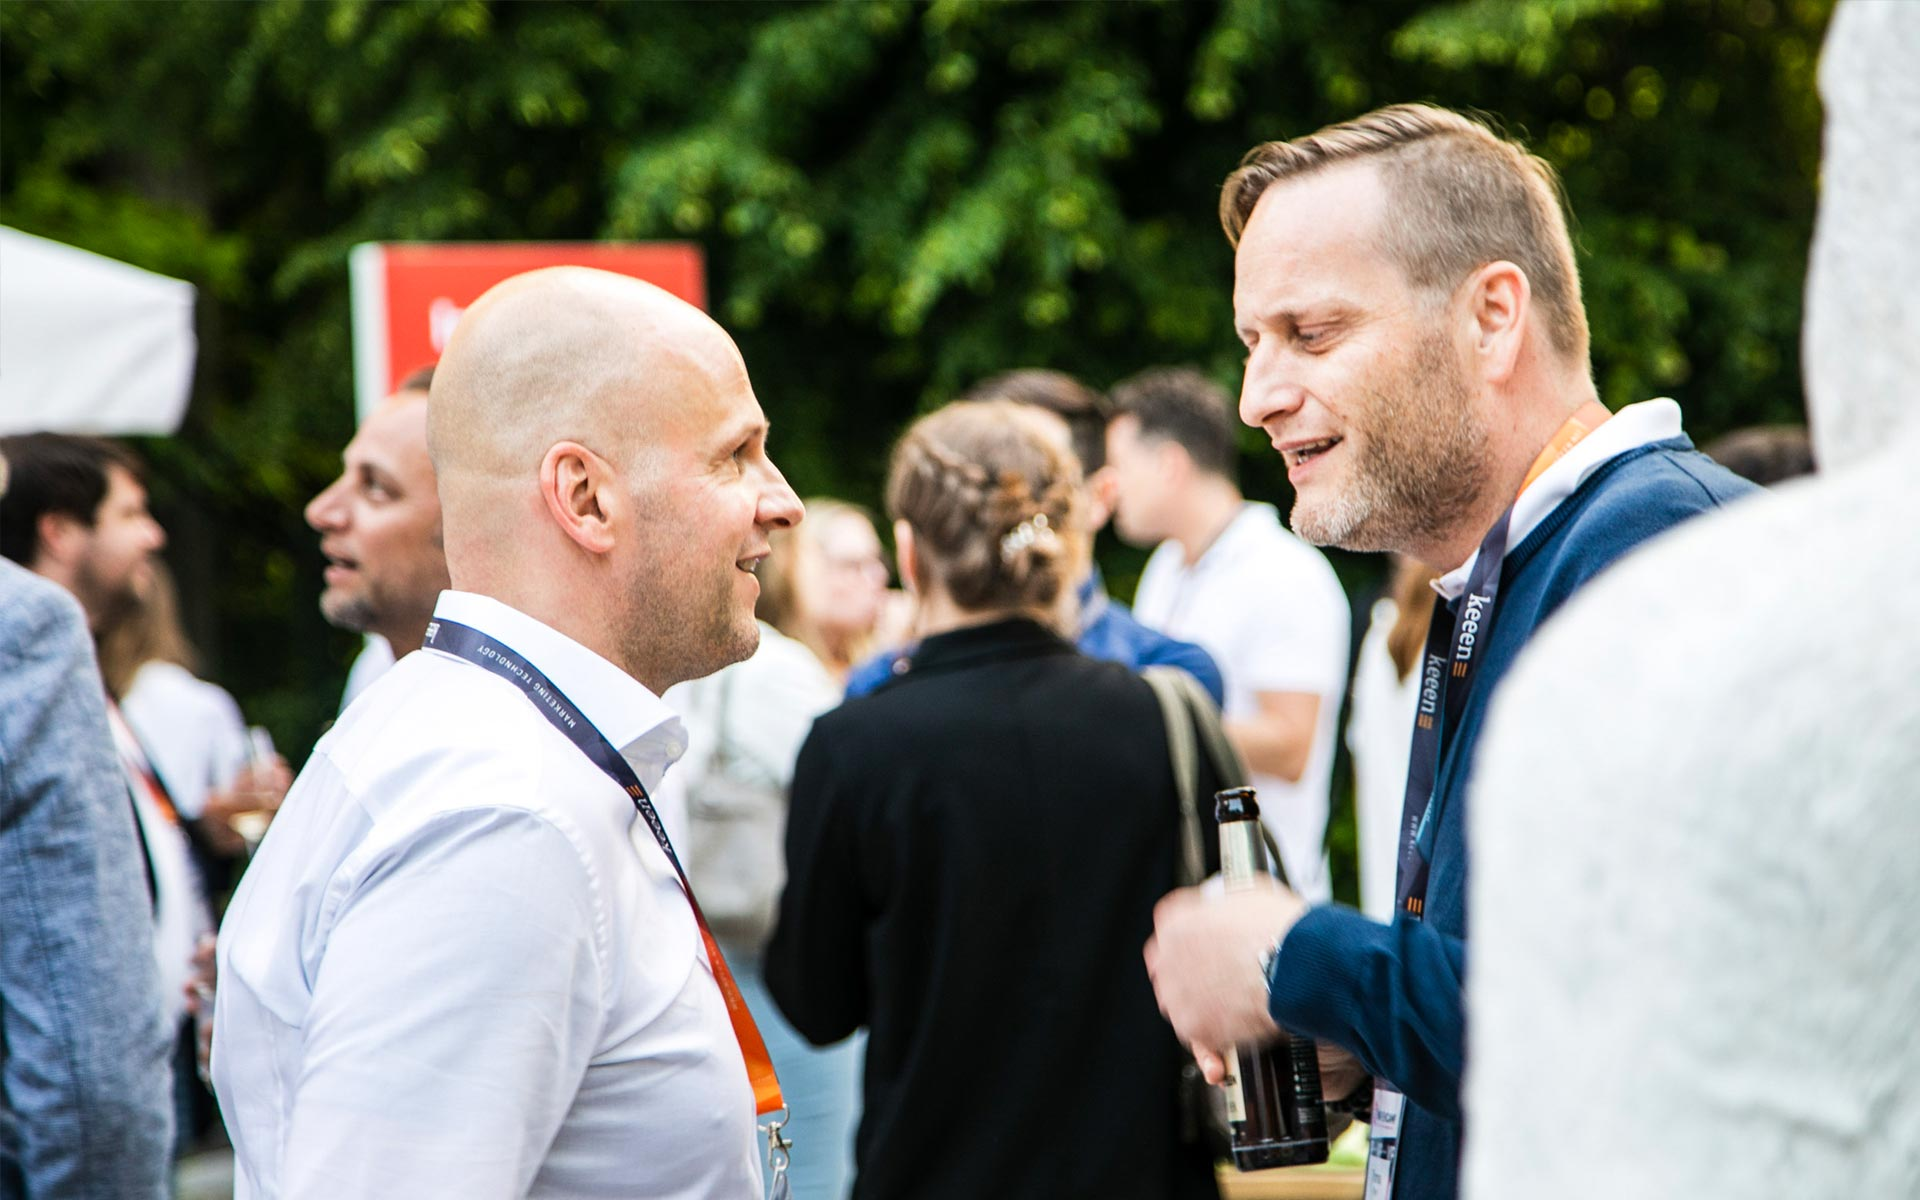 stay_golden-markencamp-2019-markenkonferenz-frankfurt-corporate_design-02